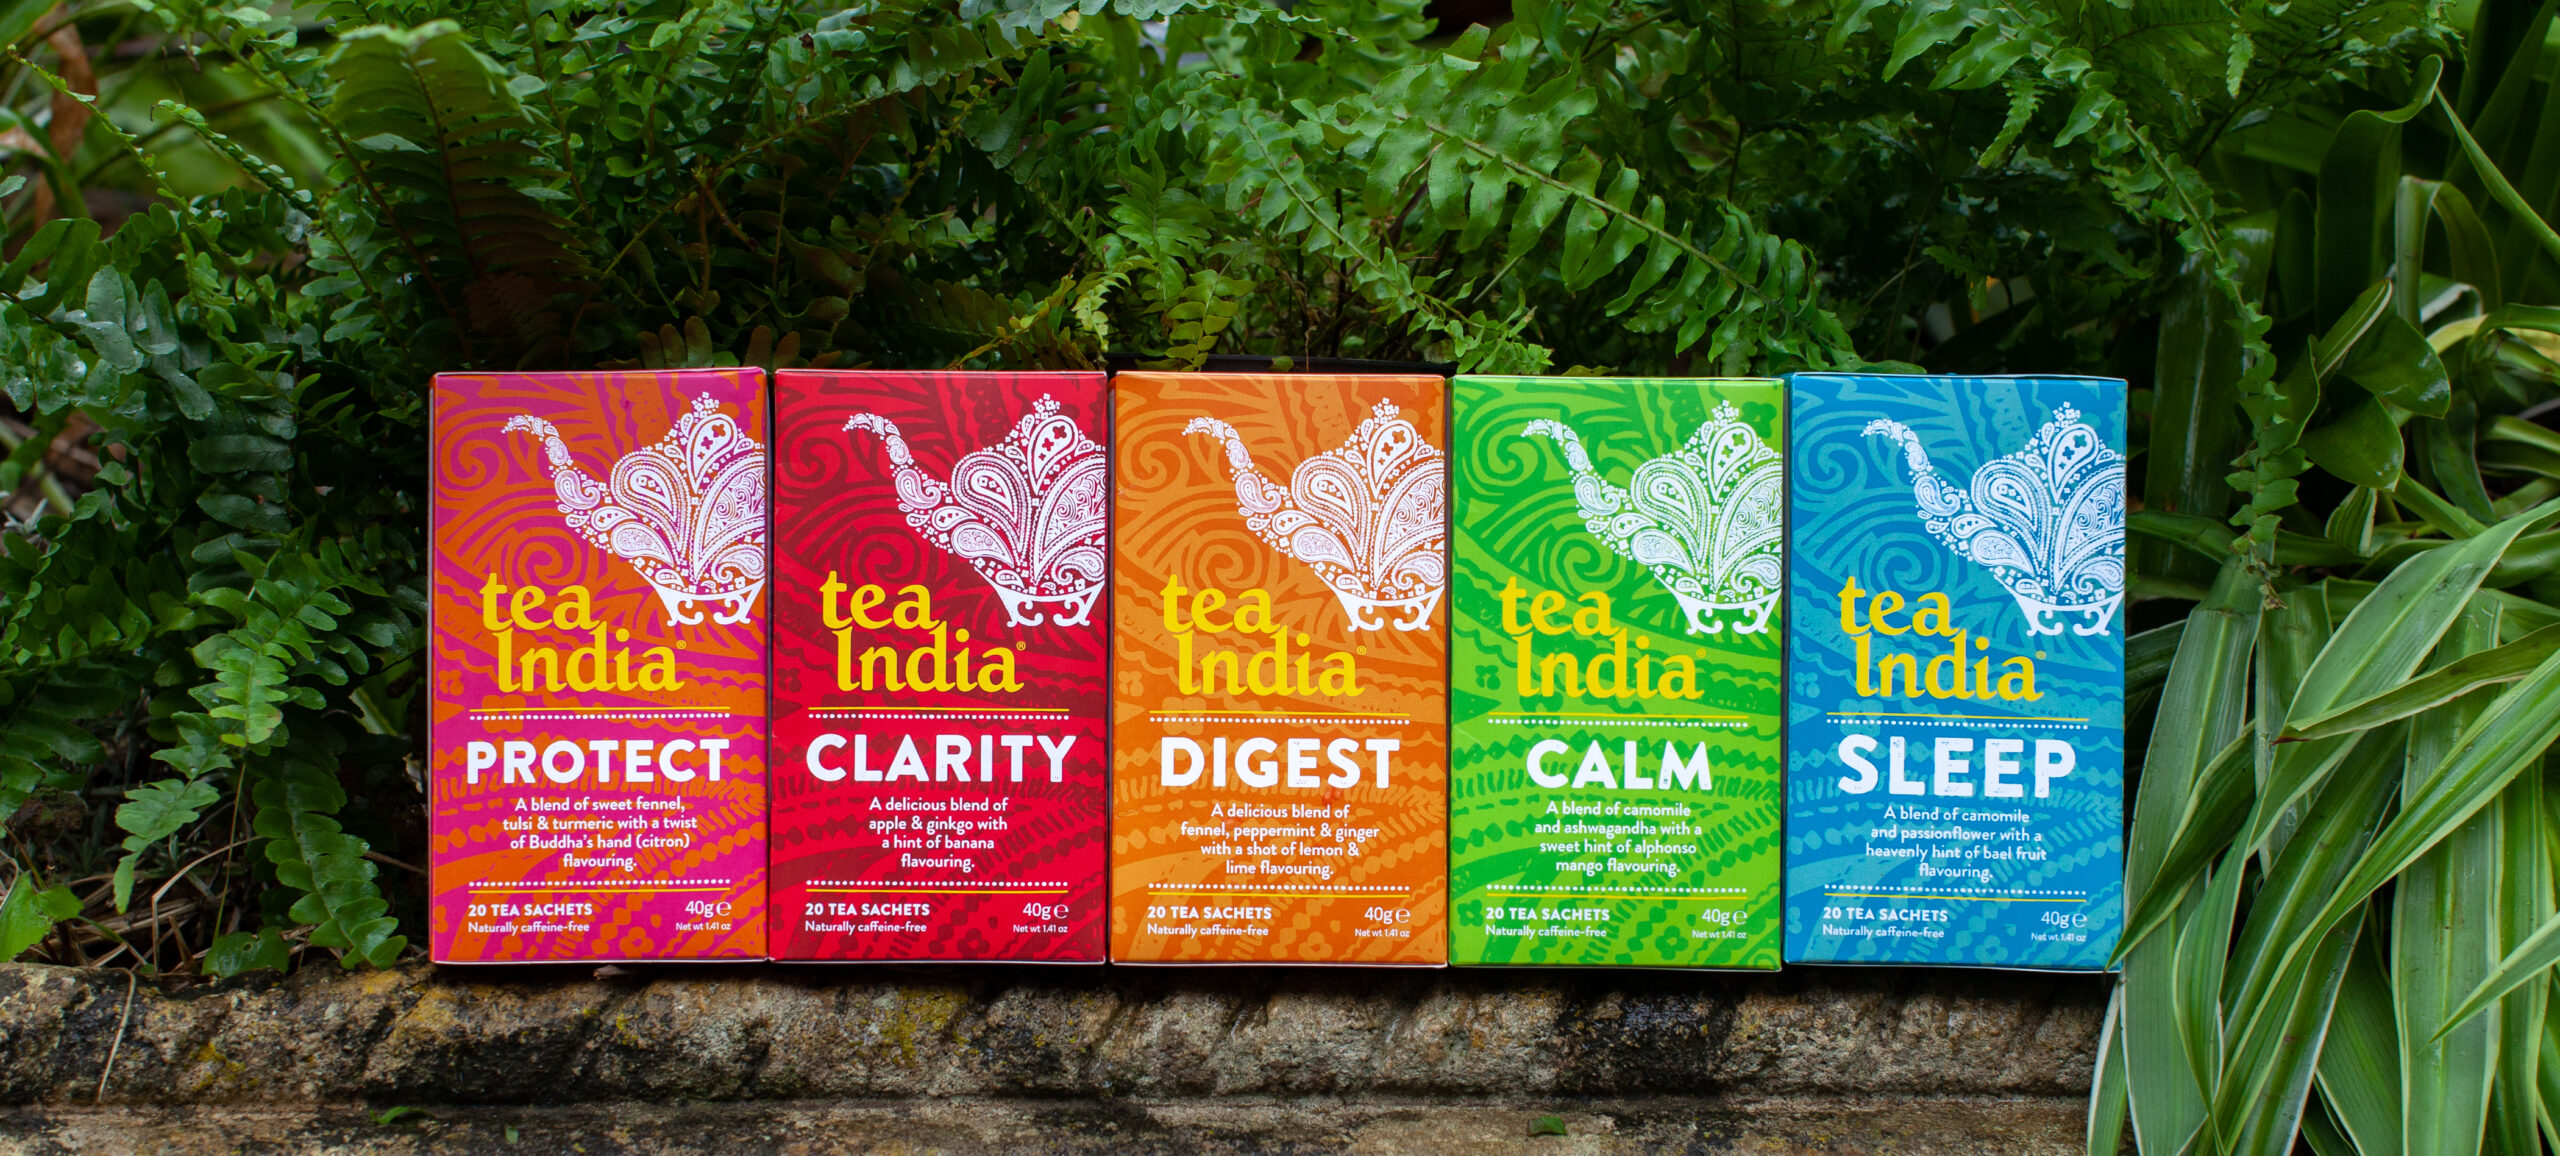 Tea India New Wellness Collection of Herbal Teas